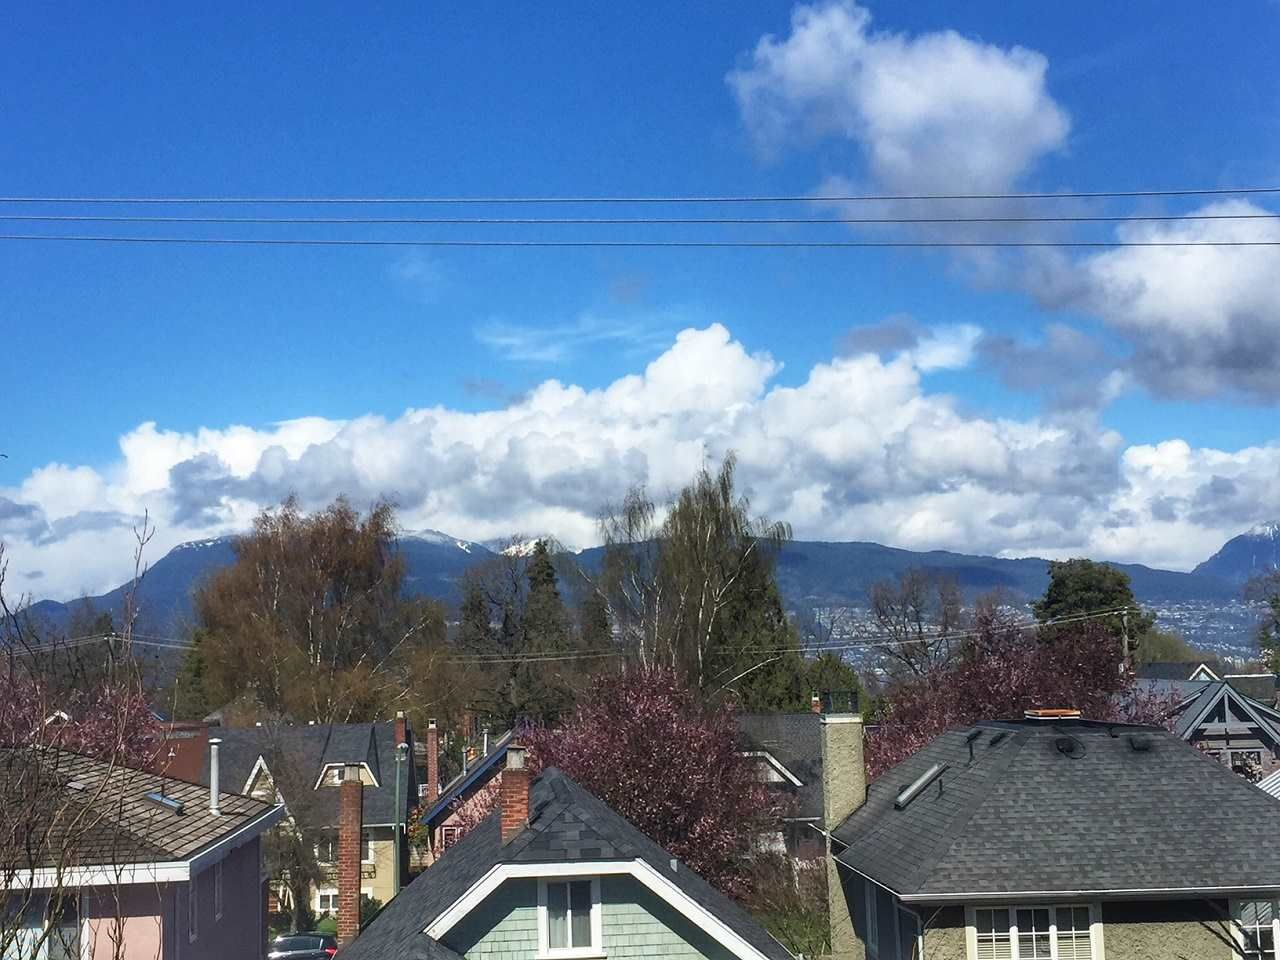 Main Photo: 206 4375 W 10TH Avenue in Vancouver: Point Grey Condo for sale (Vancouver West)  : MLS®# R2256755